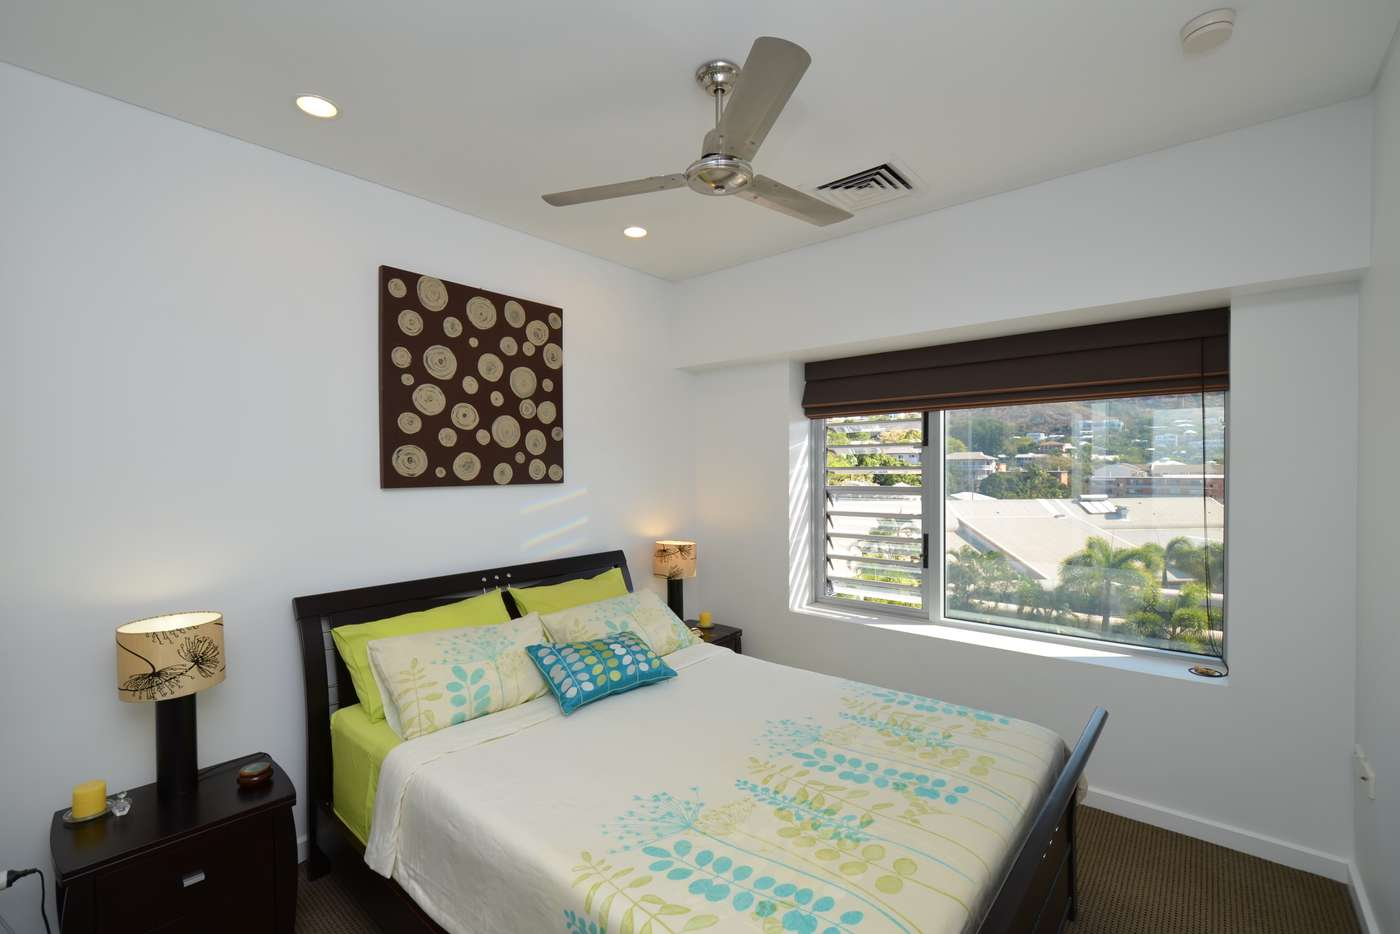 Sixth view of Homely apartment listing, 55/45-53 Gregory Street, North Ward, North Ward QLD 4810